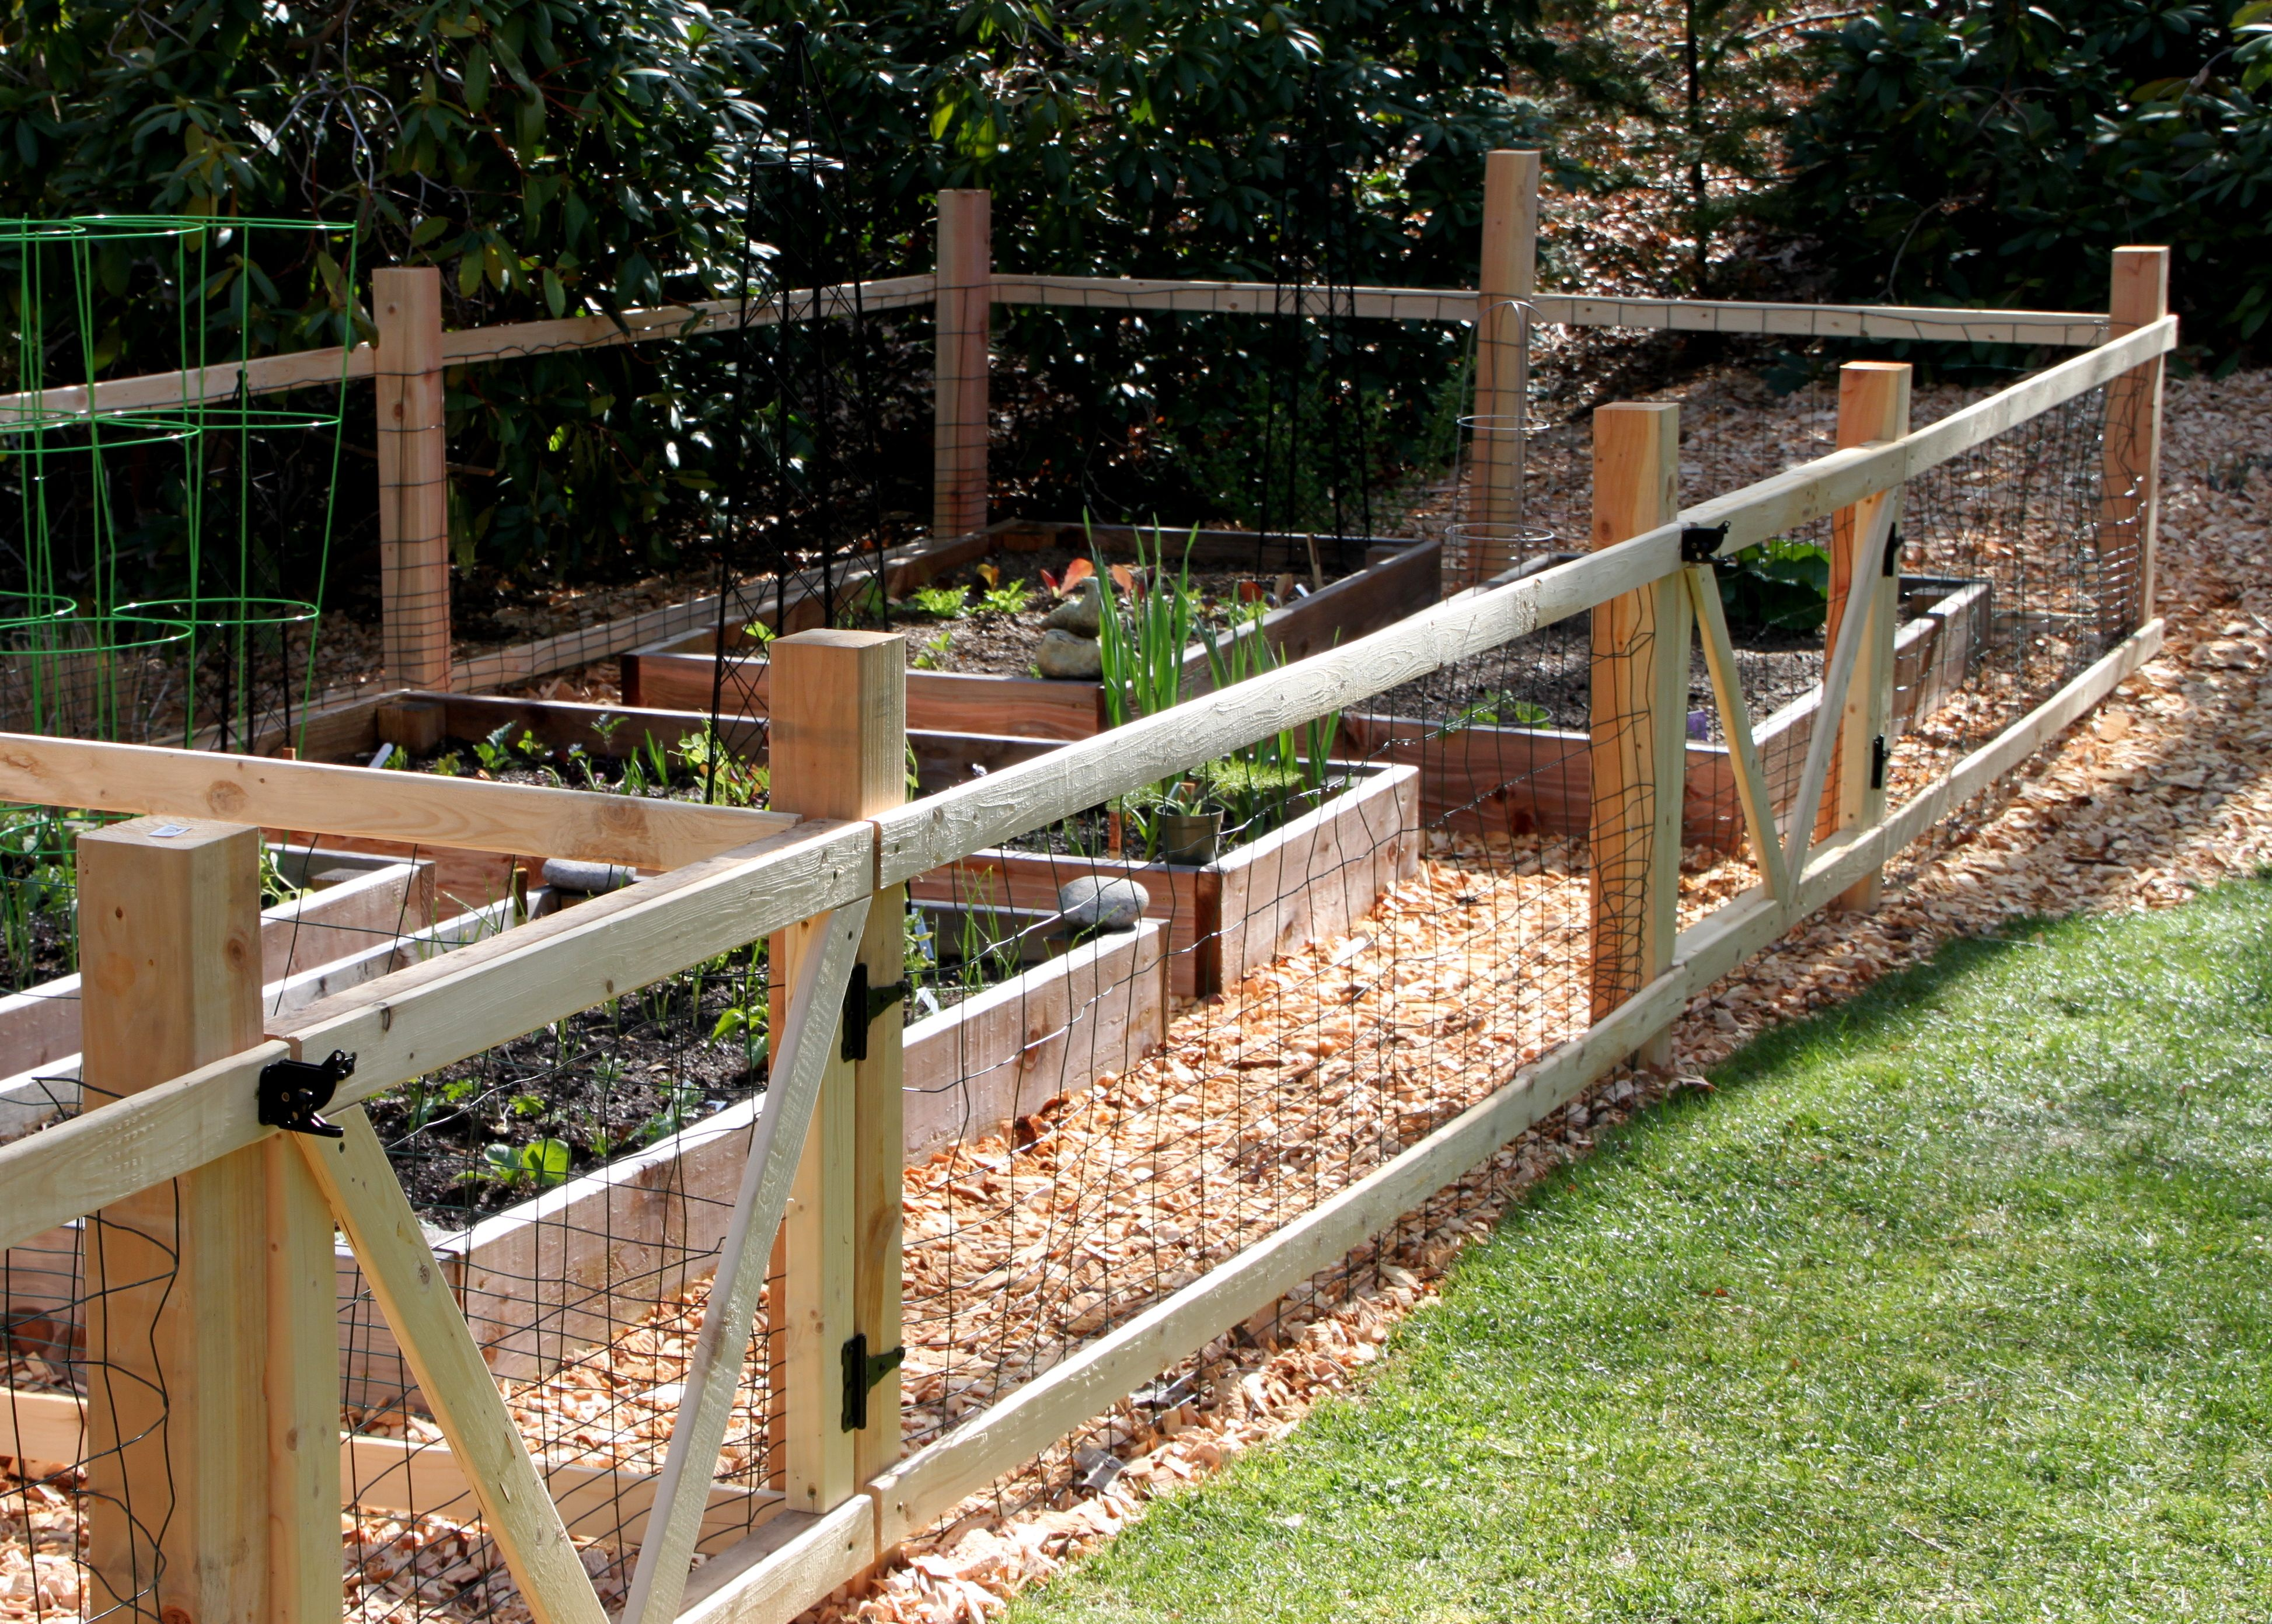 Superbe Learn How To Create A Simple And Inexpensive Garden Fence To Keep Small  Critters Such As Bunnies Out And Deter Backyard Chickens From Entering.